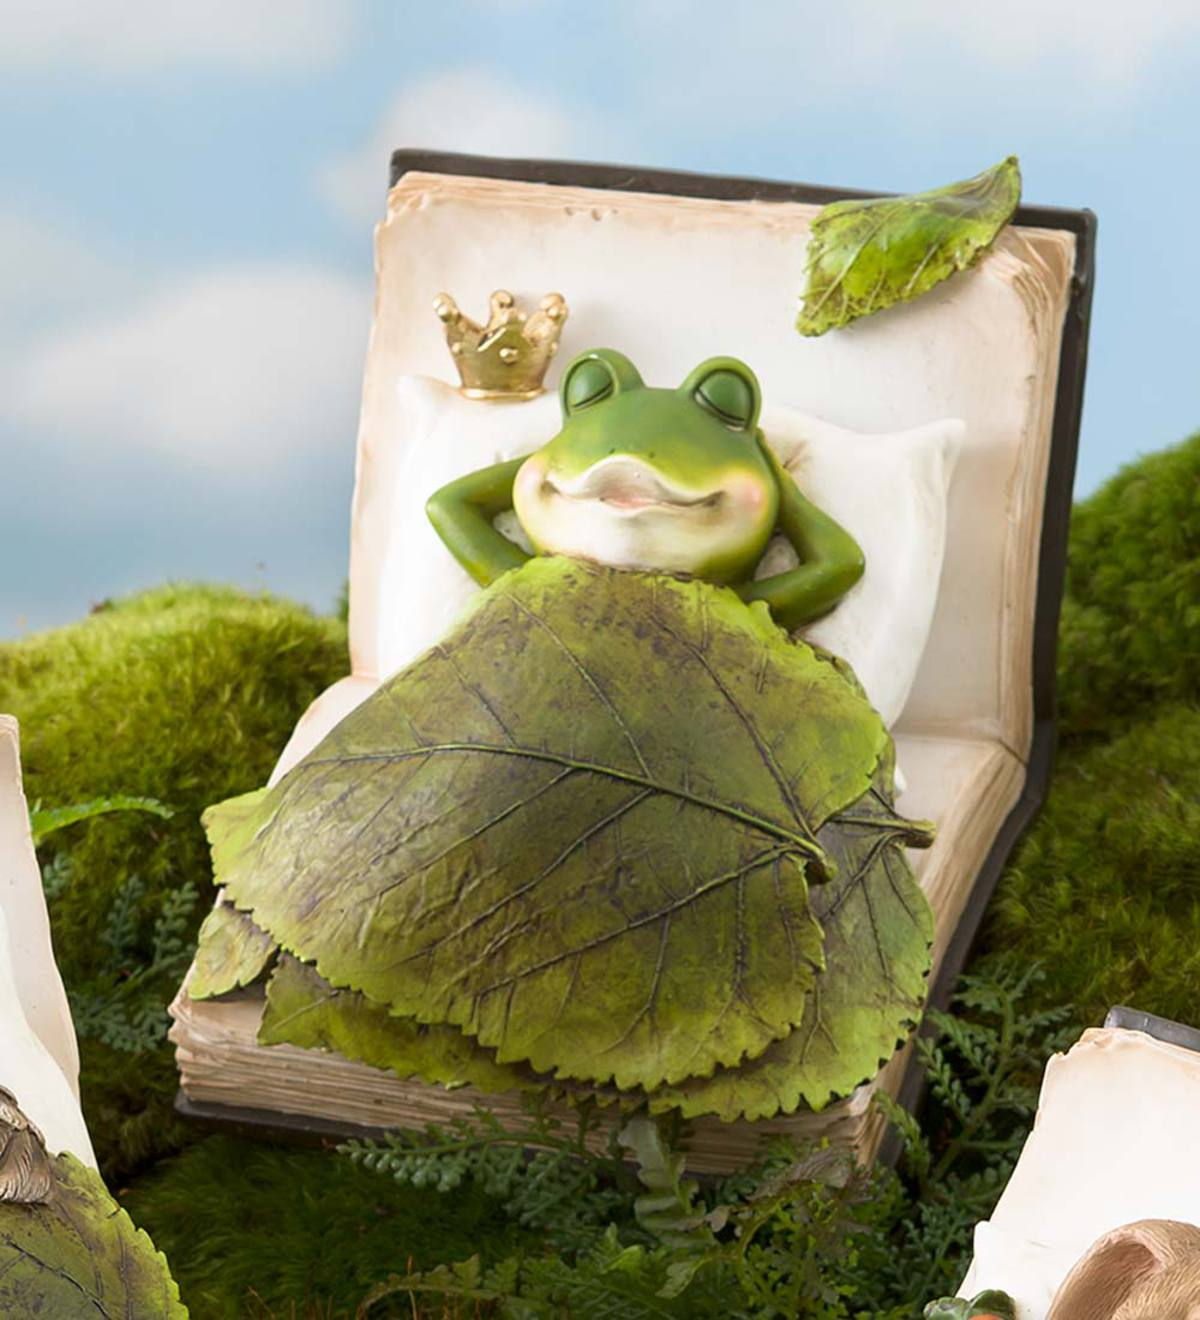 Marvelous Book Dreamer Sleeping Animal Garden Statue Frog Plowhearth Ocoug Best Dining Table And Chair Ideas Images Ocougorg